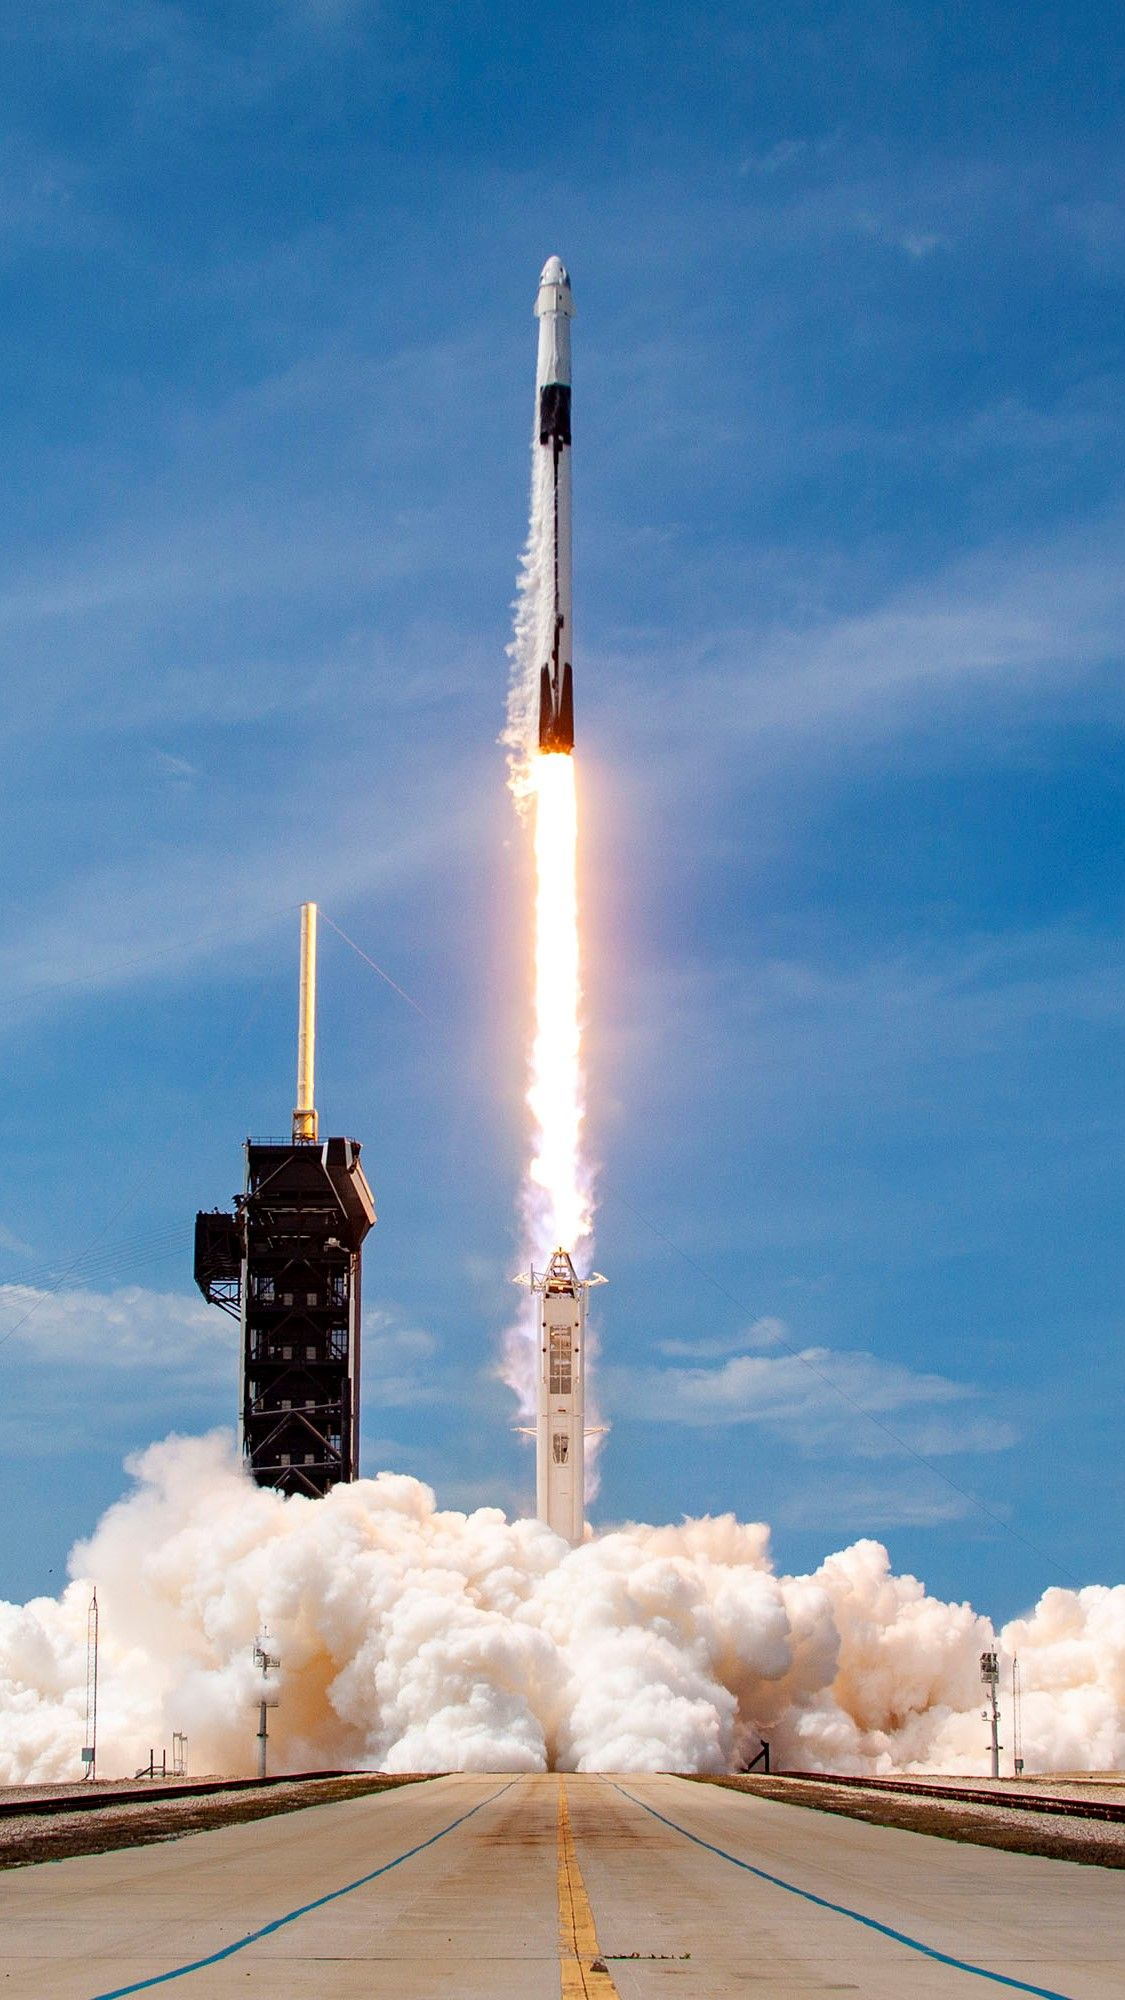 Falcon 9 Rocket On The Demo 2 Mission Spacex Wallpaper Phone Spacex Rocket Punisher 1